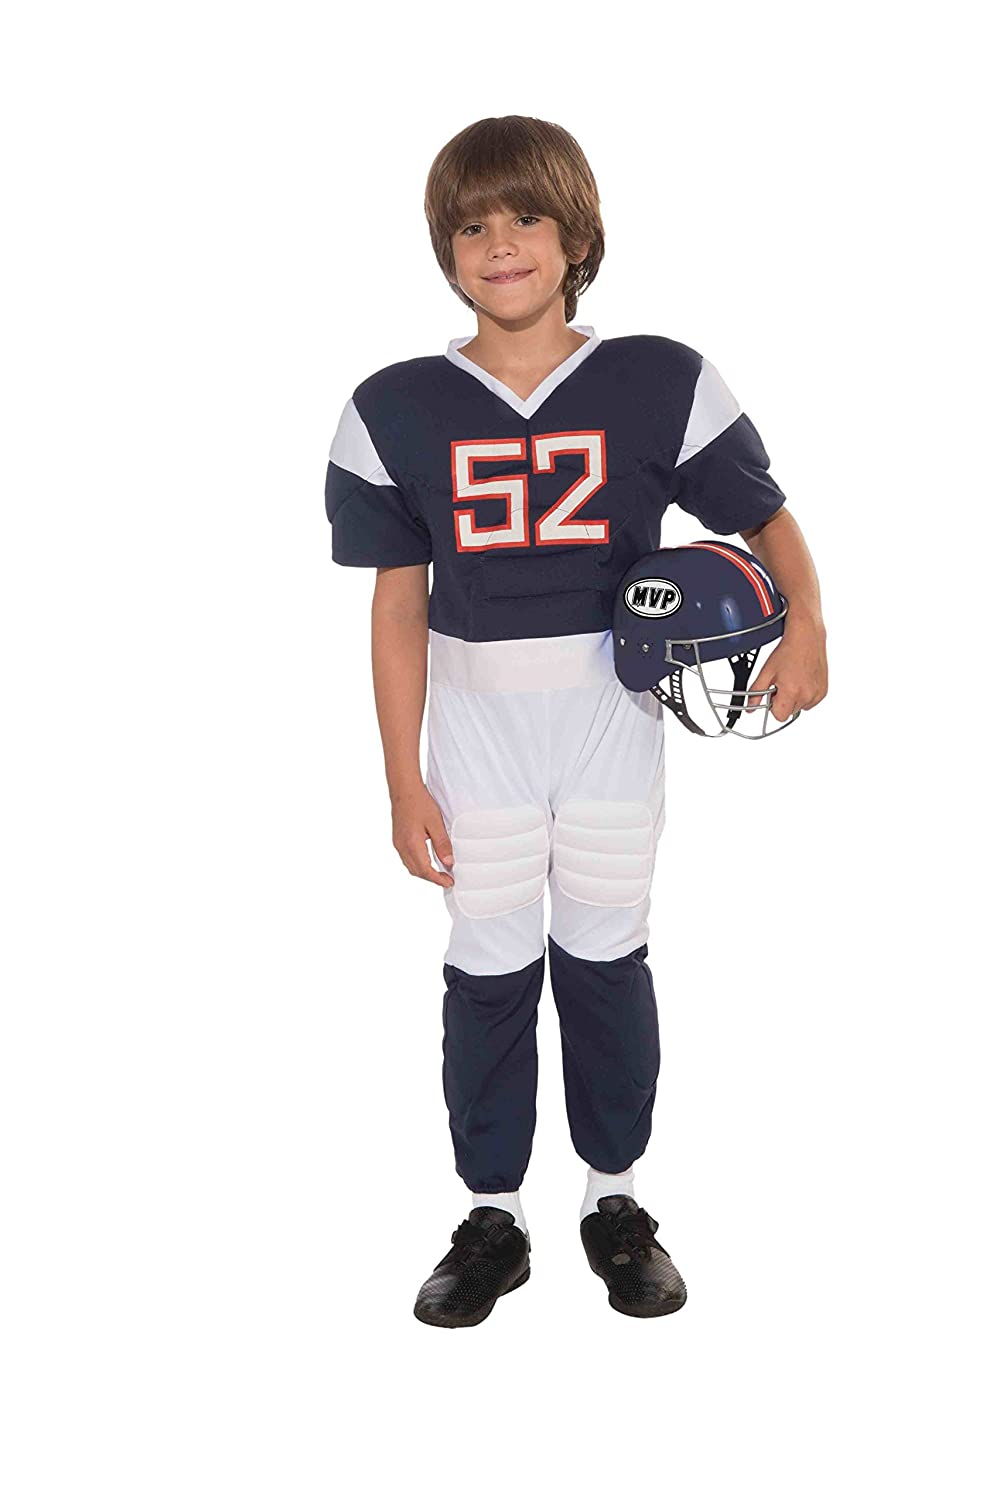 Amazon.com Forum Novelties Football Player Childu0027s Costume Small Toys u0026 Games  sc 1 st  Amazon.com & Amazon.com: Forum Novelties Football Player Childu0027s Costume Small ...